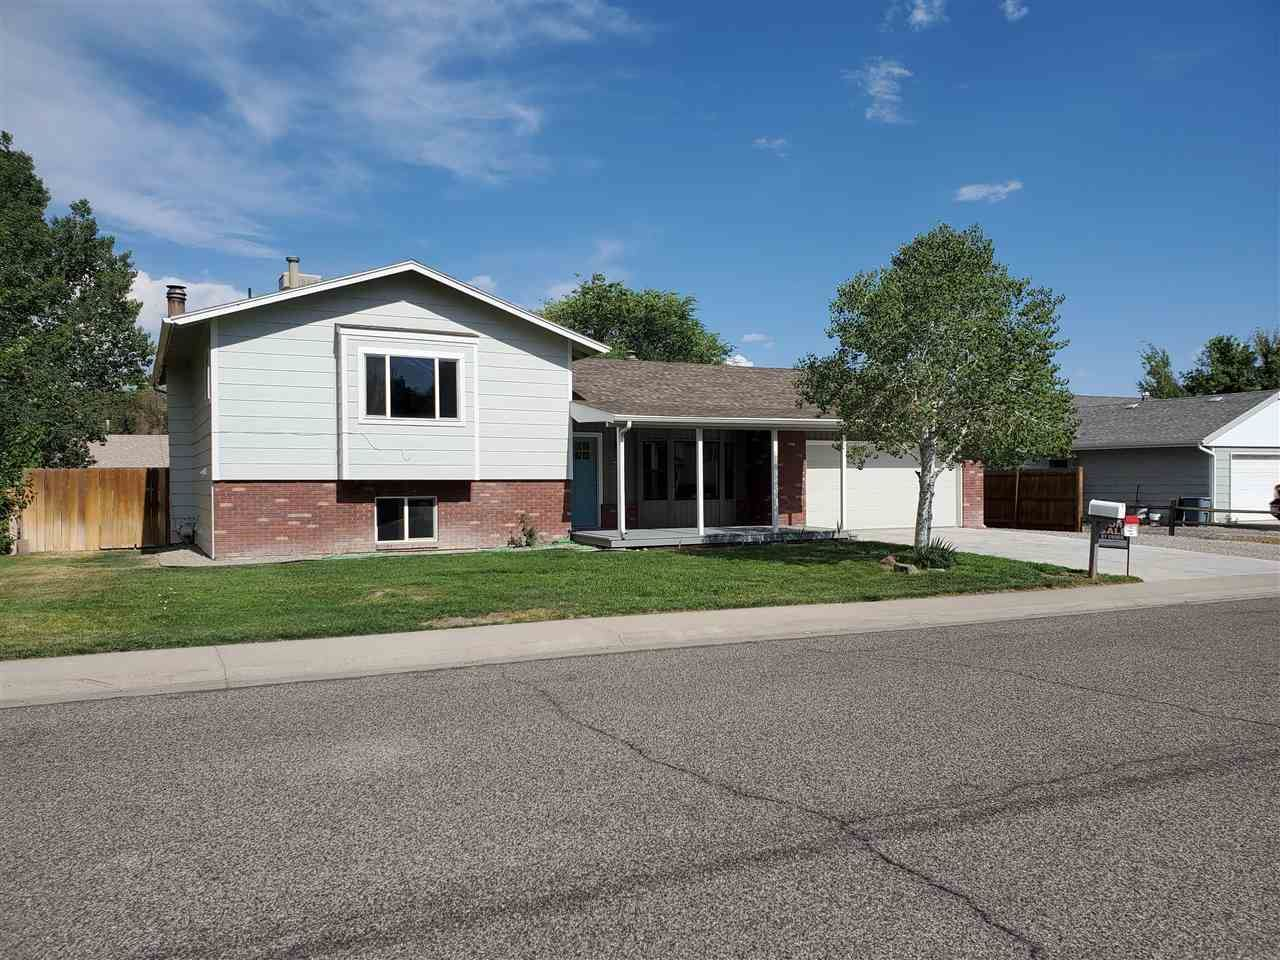 Photo of 616 W Indian Creek Road, Grand Junction, CO 81506 (MLS # 20213800)